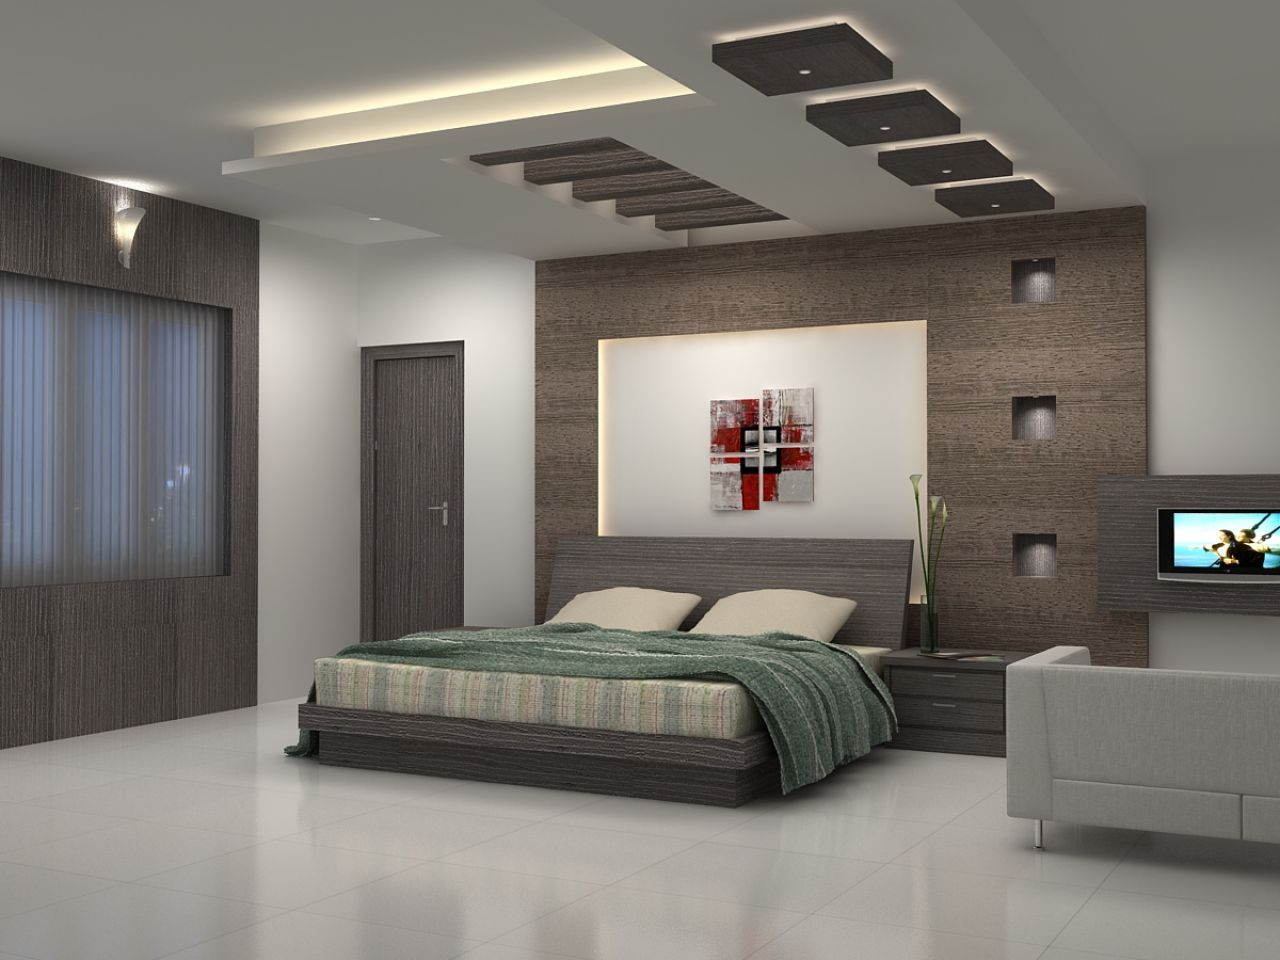 Modern master bedroom ceiling designs - Modern Ceiling Design For Bed Room 2015 Google Search